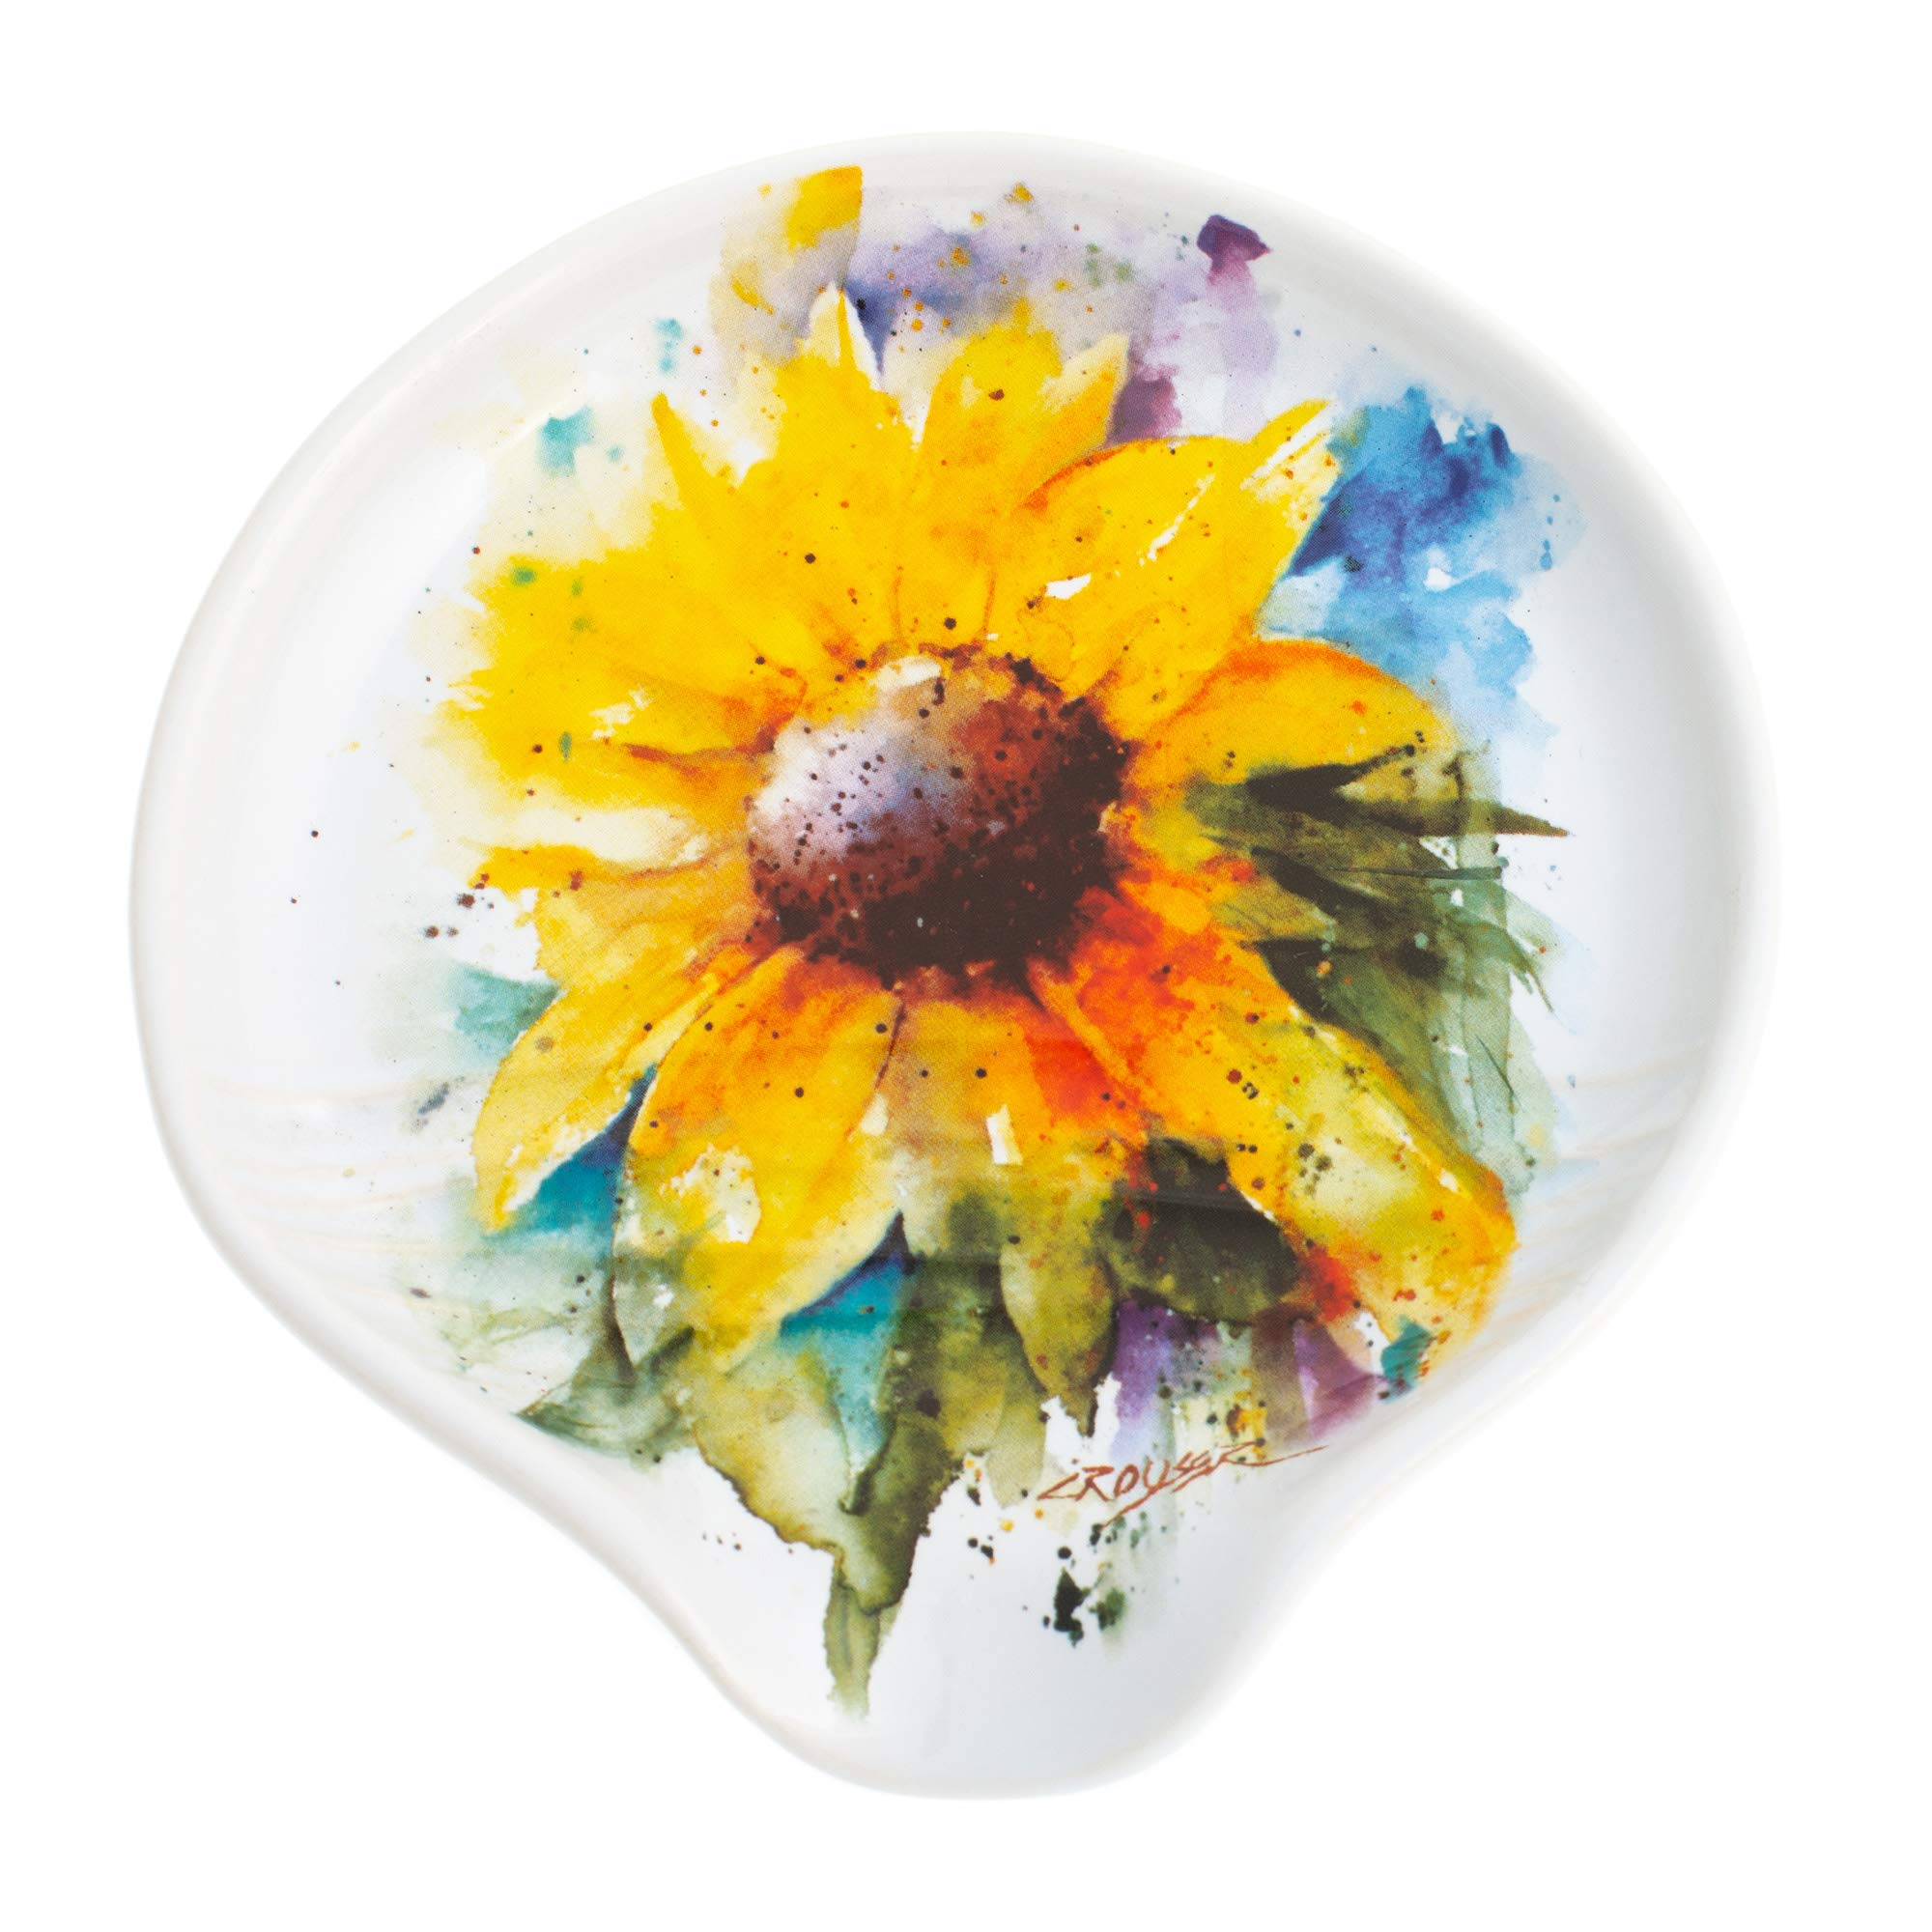 DEMDACO Sunflower Watercolor Yellow On White 5 x 5 Glossy Stoneware Spoon Rest by DEMDACO